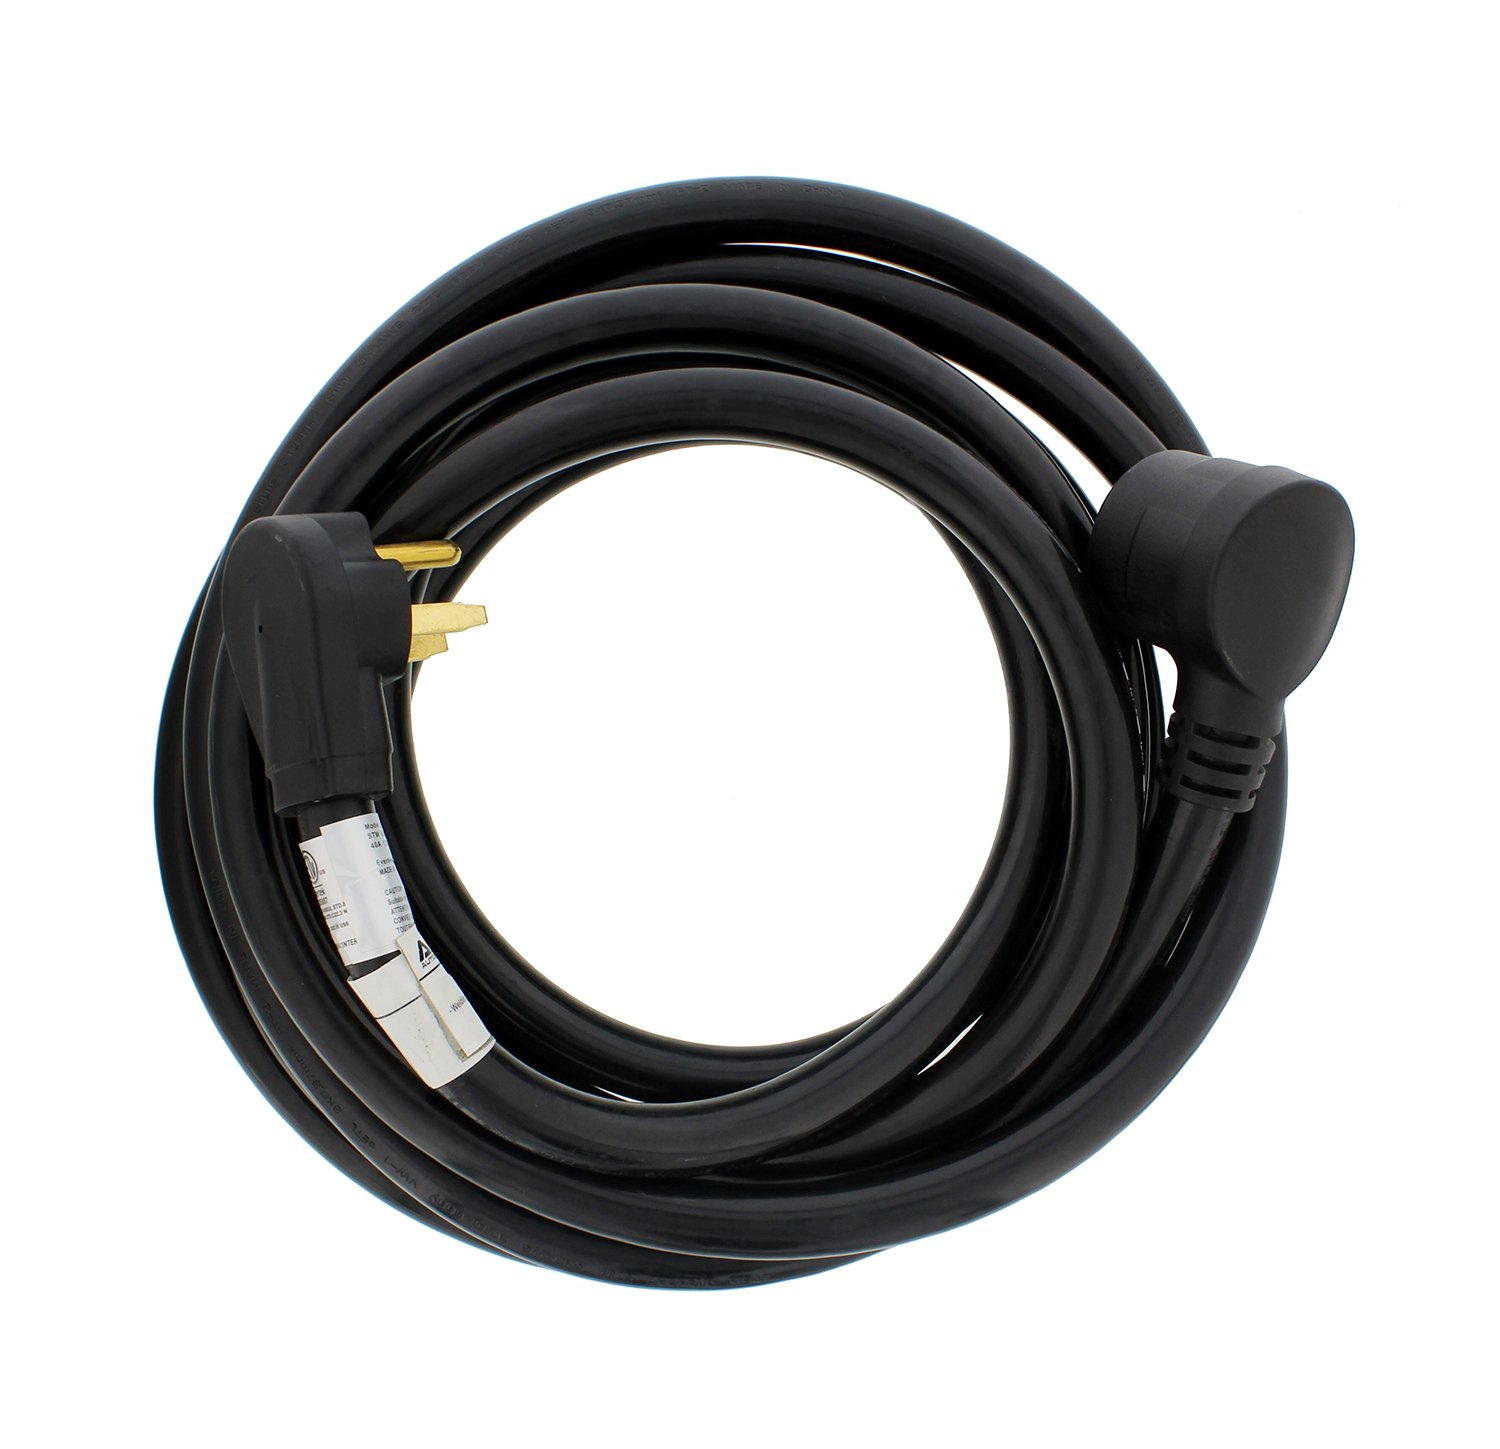 ABN Welding Cable 20' Feet 8 AWG 40A with STW Jacket